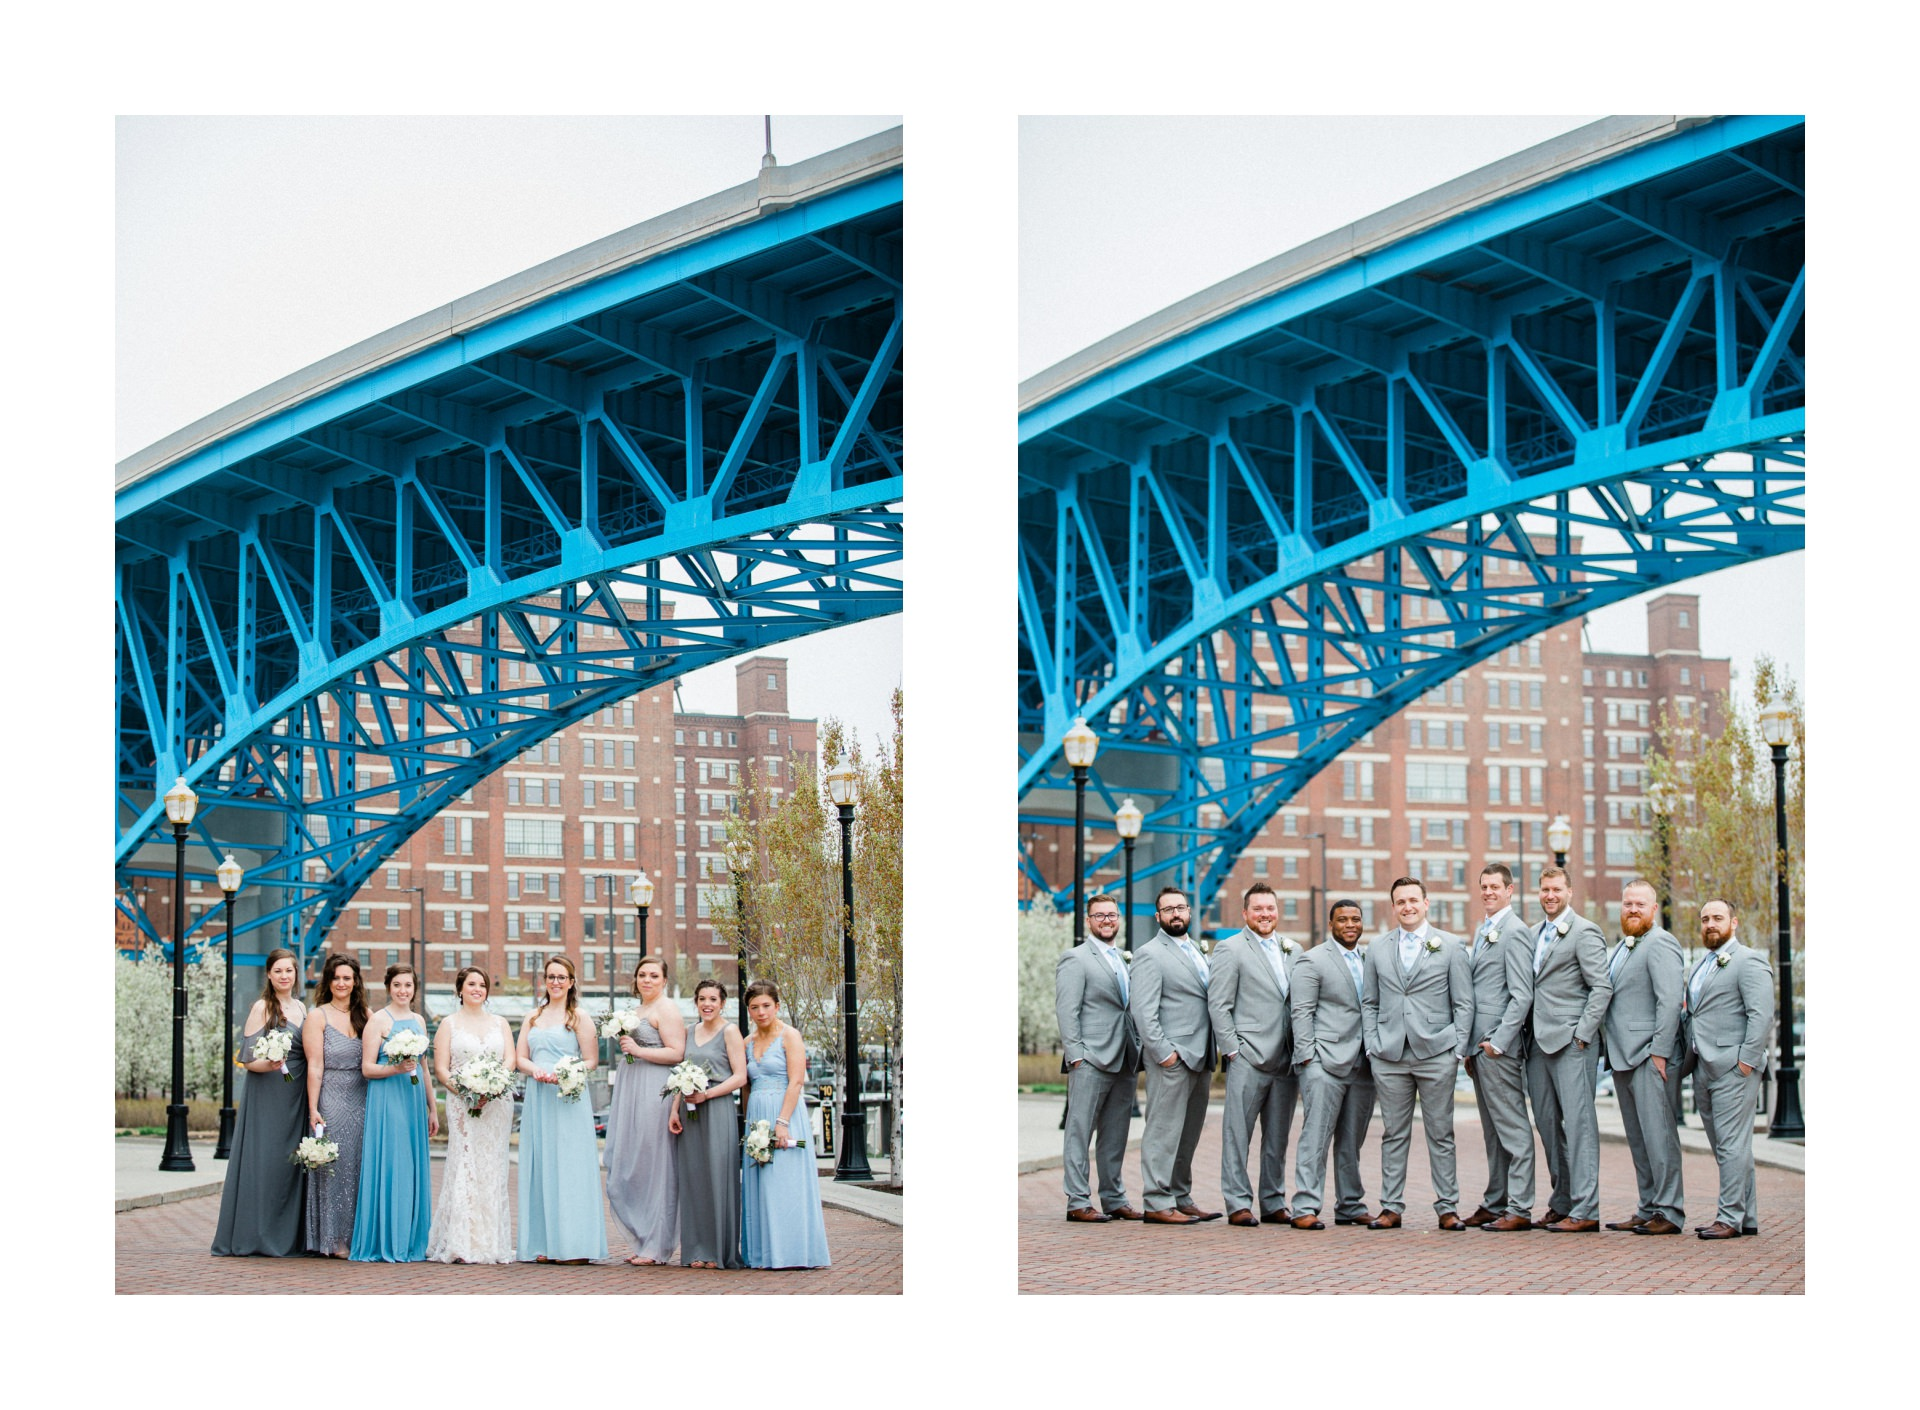 Windows on the River Cleveland Wedding Photographer 1 41.jpg